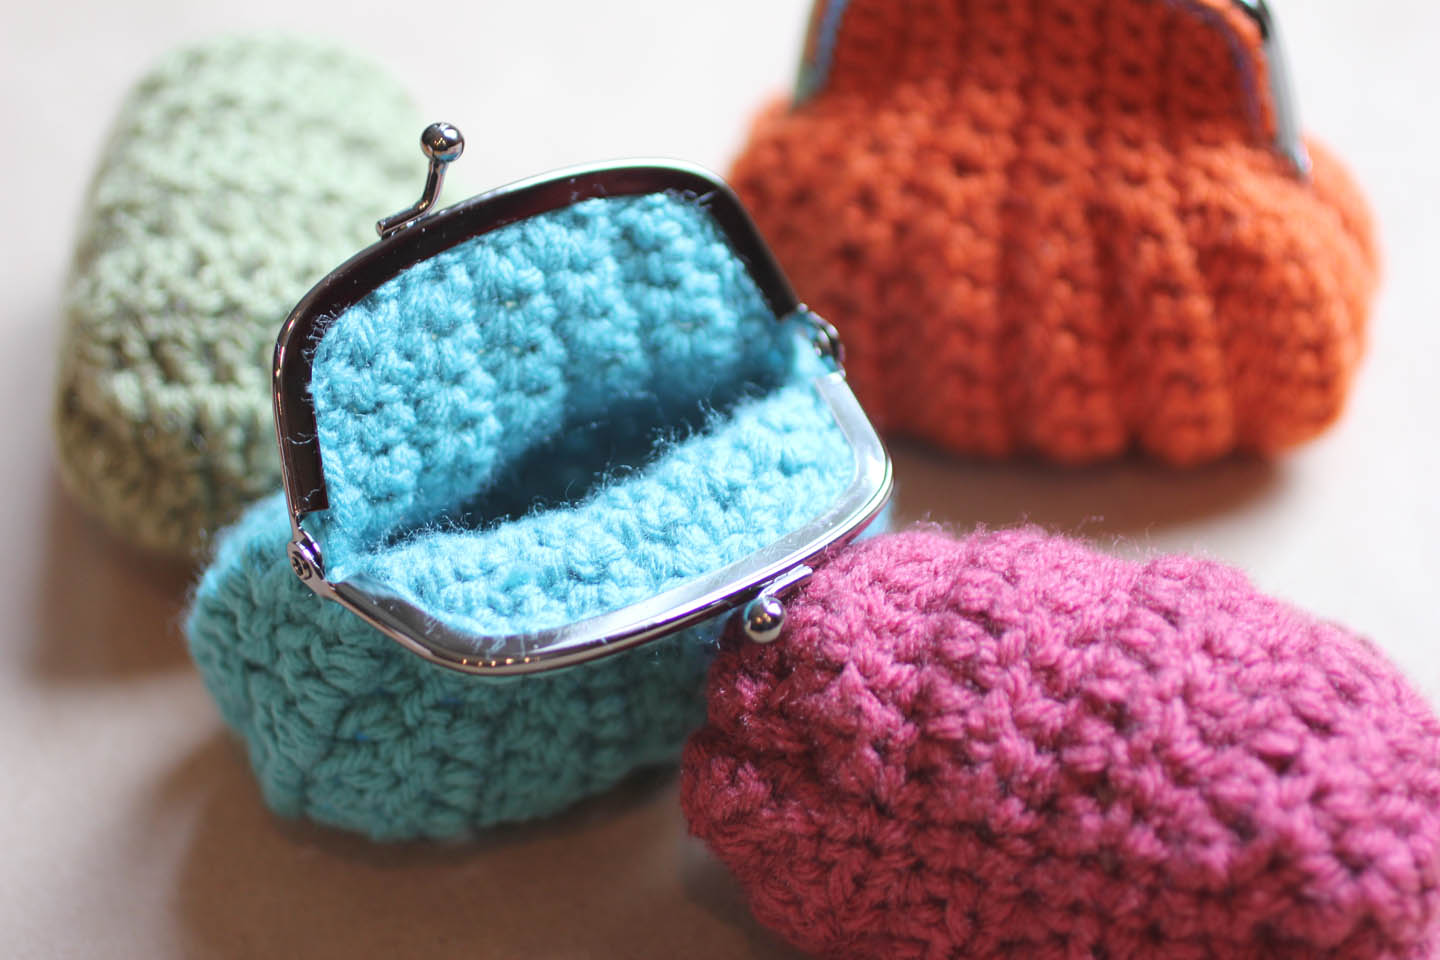 Crochet Pouch : Filed Under: Crocheting , Uncategorized 63 Comments